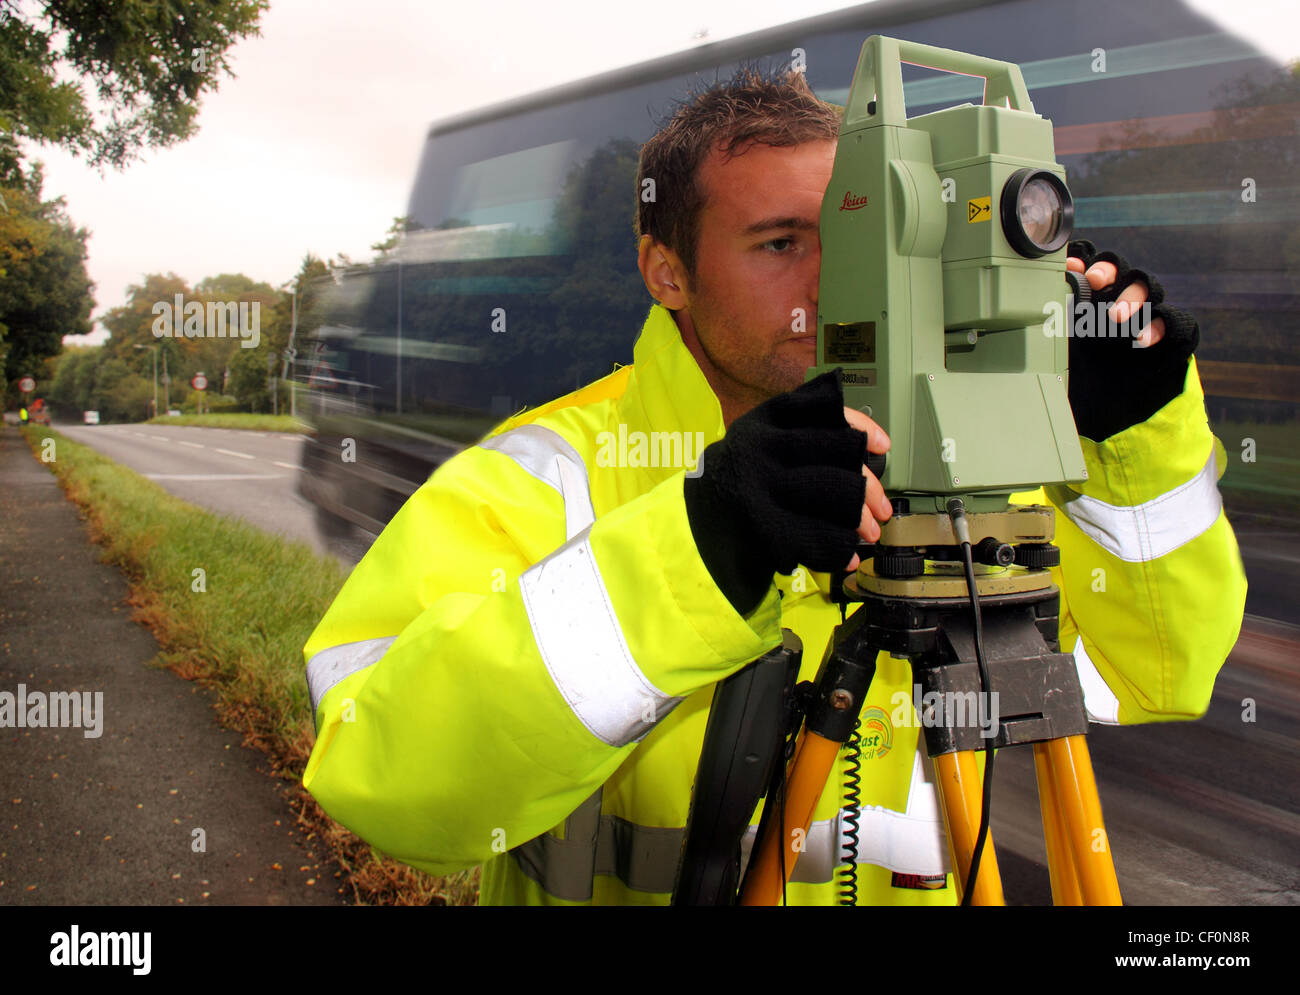 CWAC,local,authority,surveyor,on,A556,Northwich,bypass,looking,towards,Chester,with,Leica,survey,instrument.,Lorry,passing.,in,the,distance,gotonysmith,engineer,civil,Cheshire,West,and,Chester,Local,authority,Council,Road,Surveyor,using,Leica,803,Ultra,on,A556,near,Peover,road,side,roadside,highway,highways,dept,department,reflective,jacket,safety,hi-vis,hivis,high,visability,young,man,male,chap,british,England,work,working,worker,slowshutter,slow,shutter,working,at,work,cwac,cheshirewest,gotonysmith,at,work,working,surveying,speed,@hotpixuk,hotpixuk,concentrate,concentrating,yellow,jacket,florescent,safety,visible,Buy Pictures of,Buy Images Of